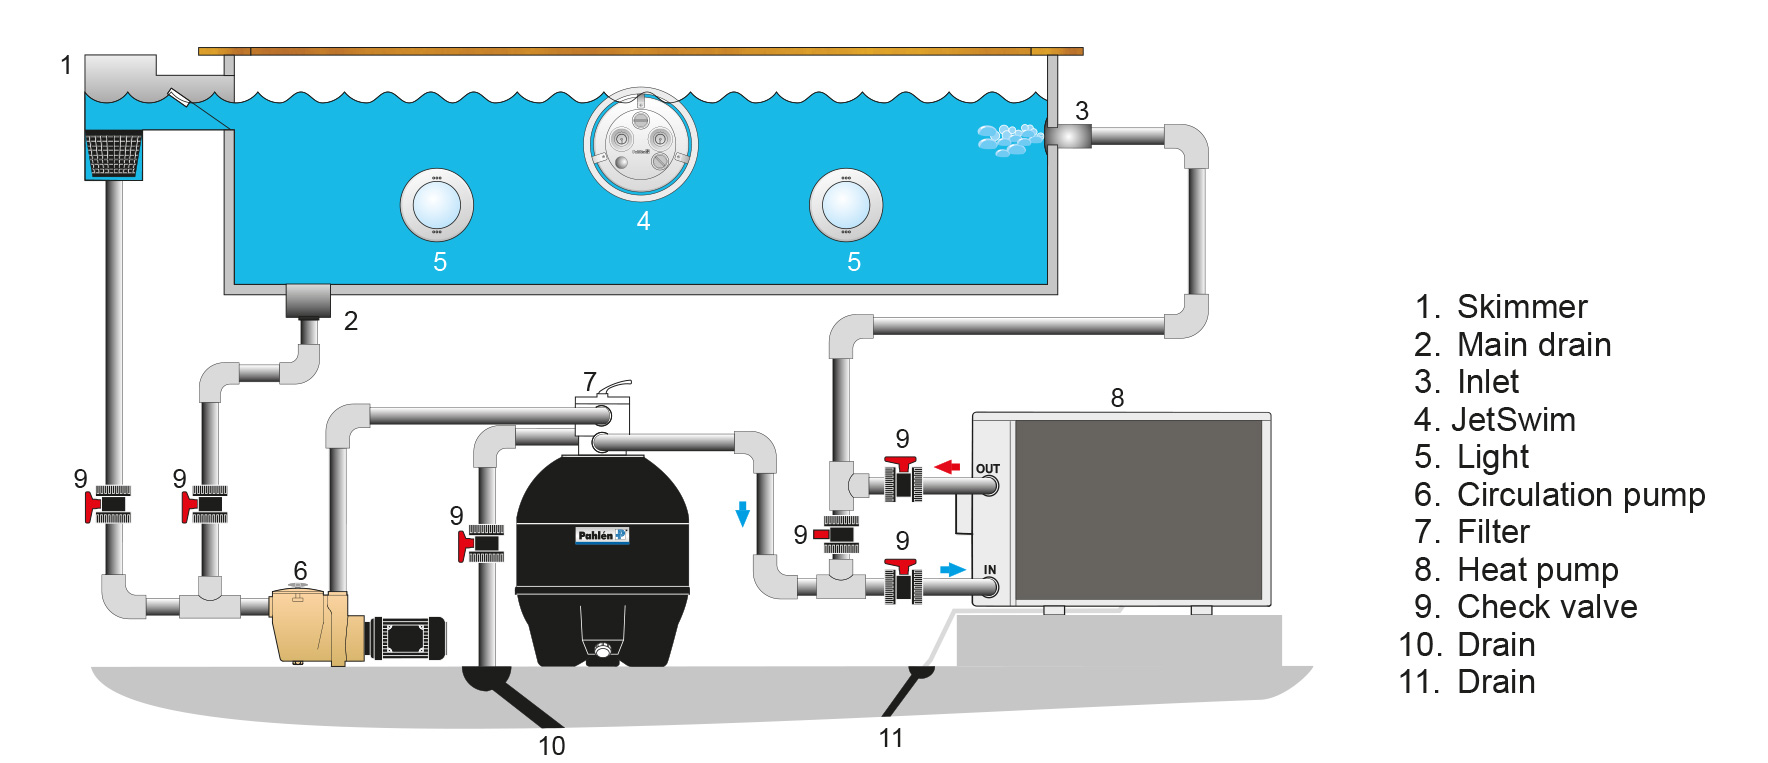 Swimming Pool Schematic Heat Exchanger, Electric Heater